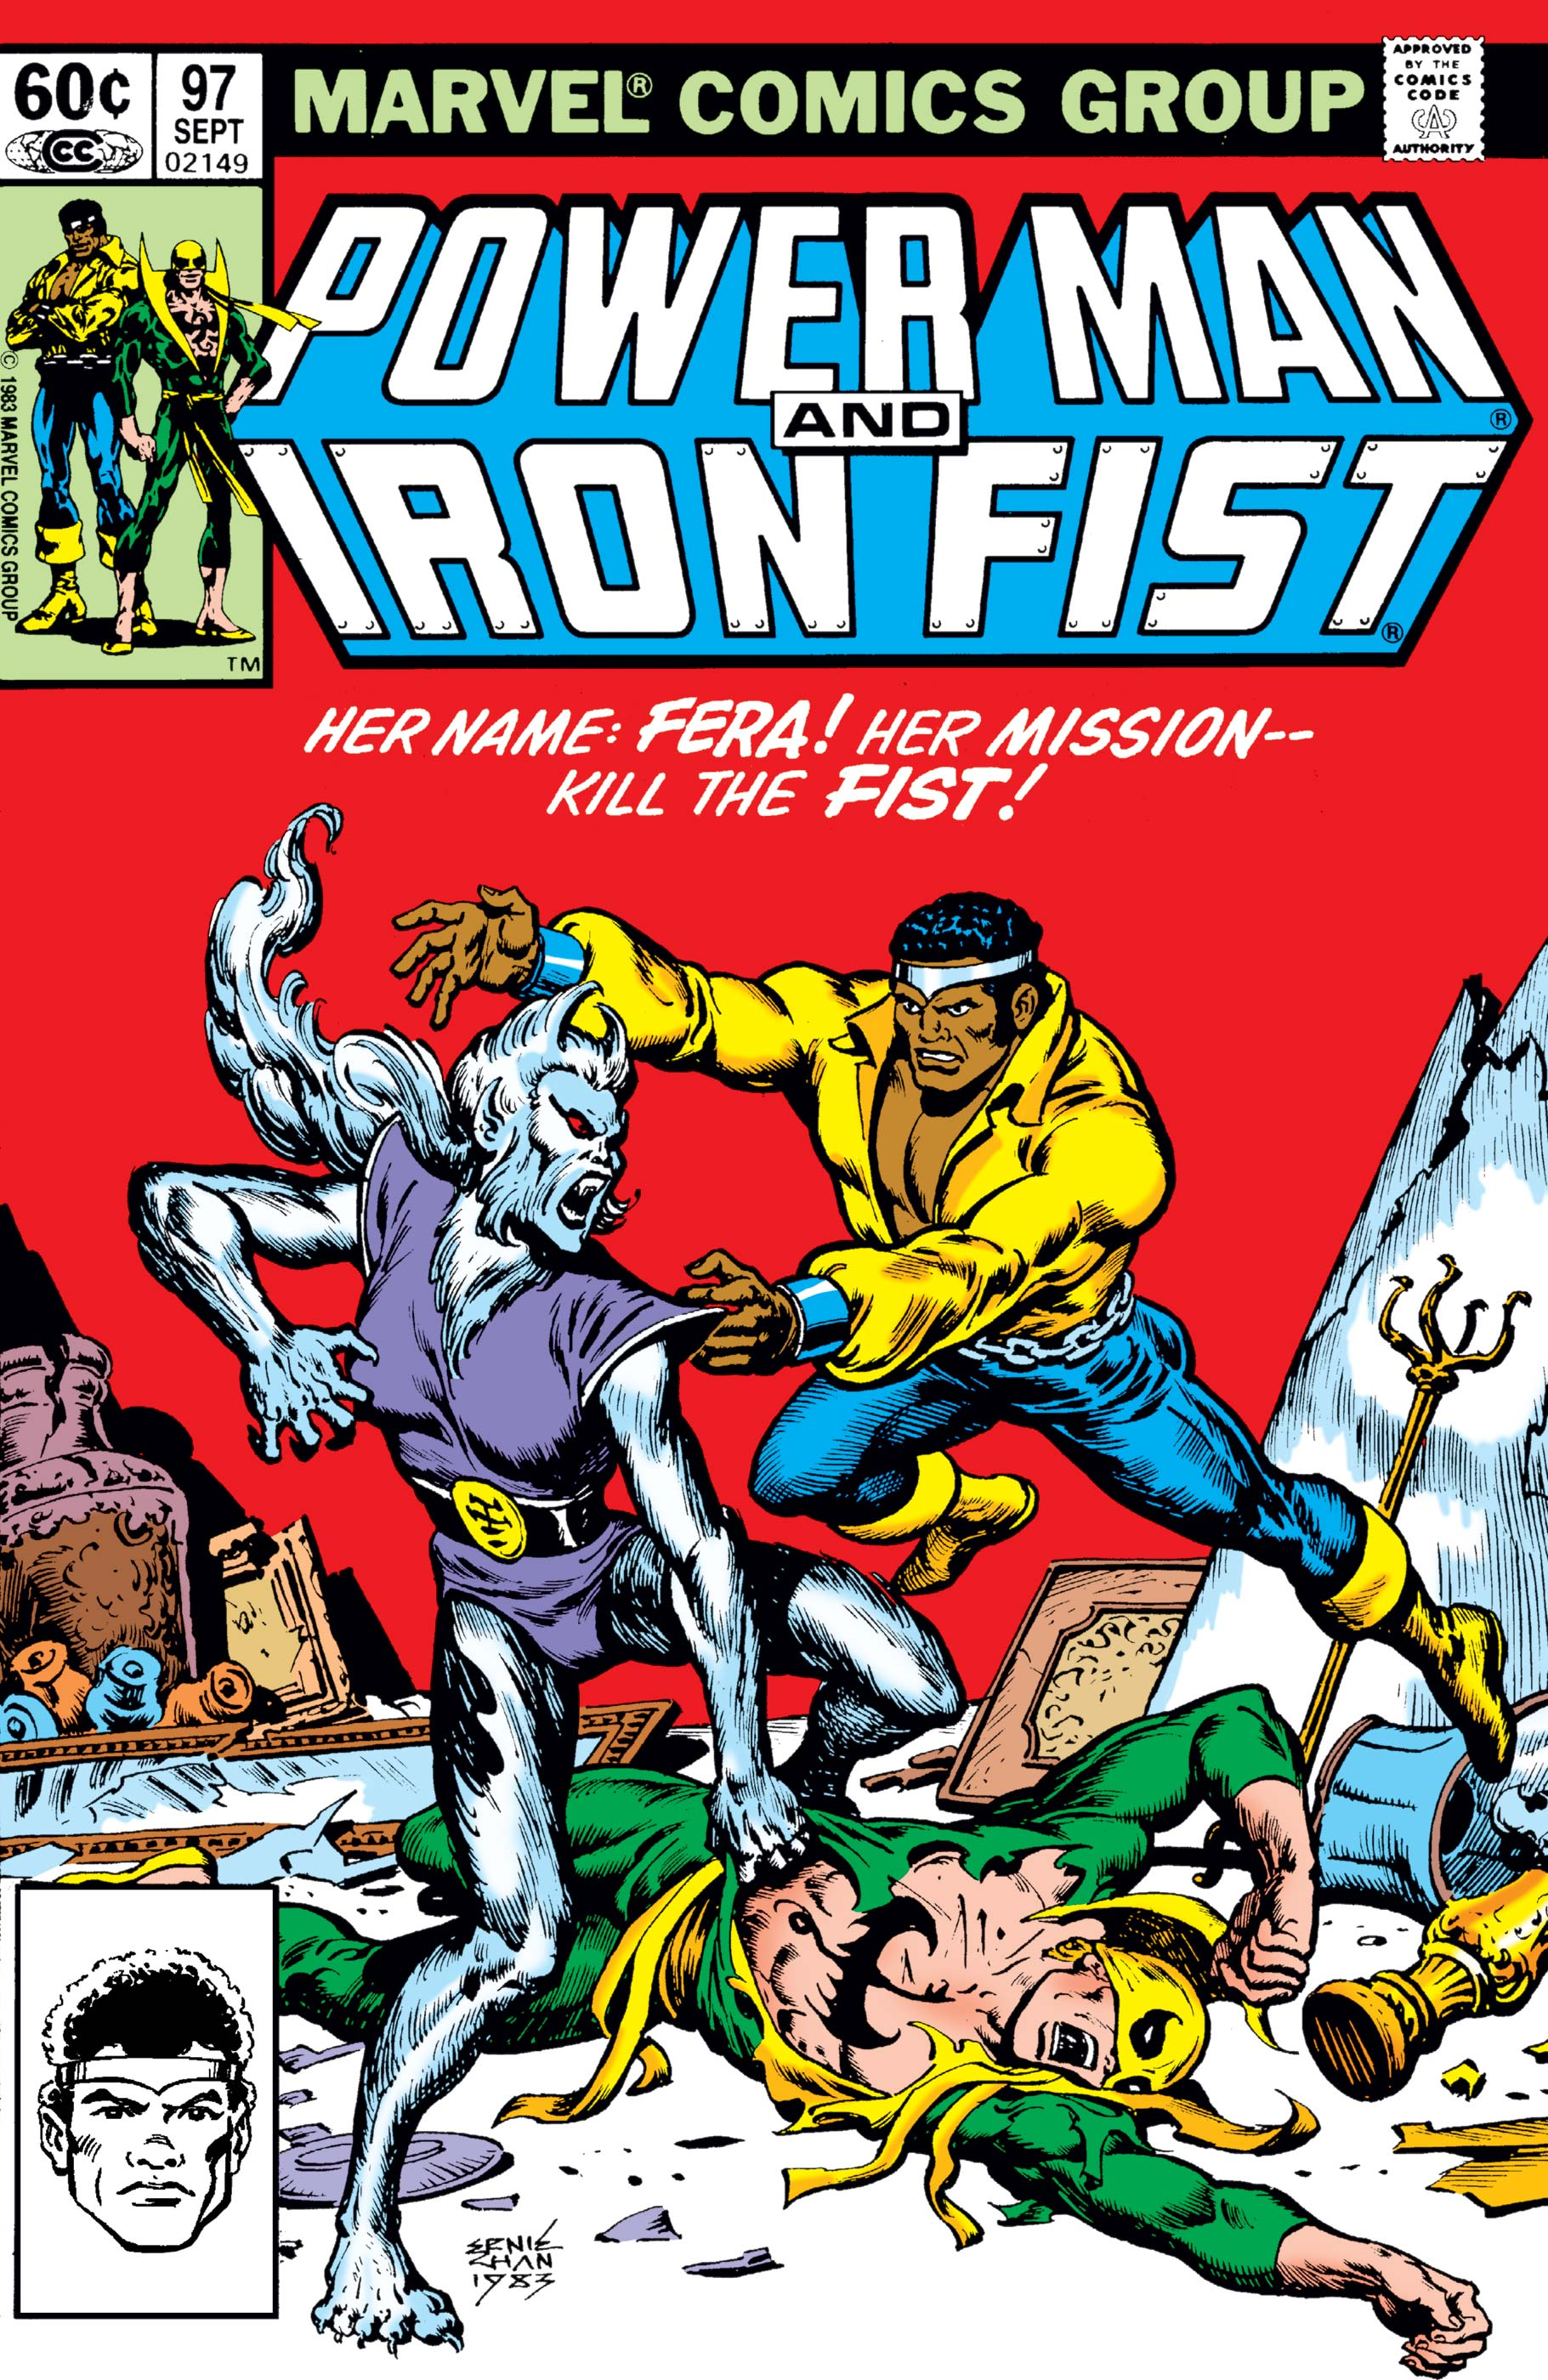 Power Man and Iron Fist (1978) #97